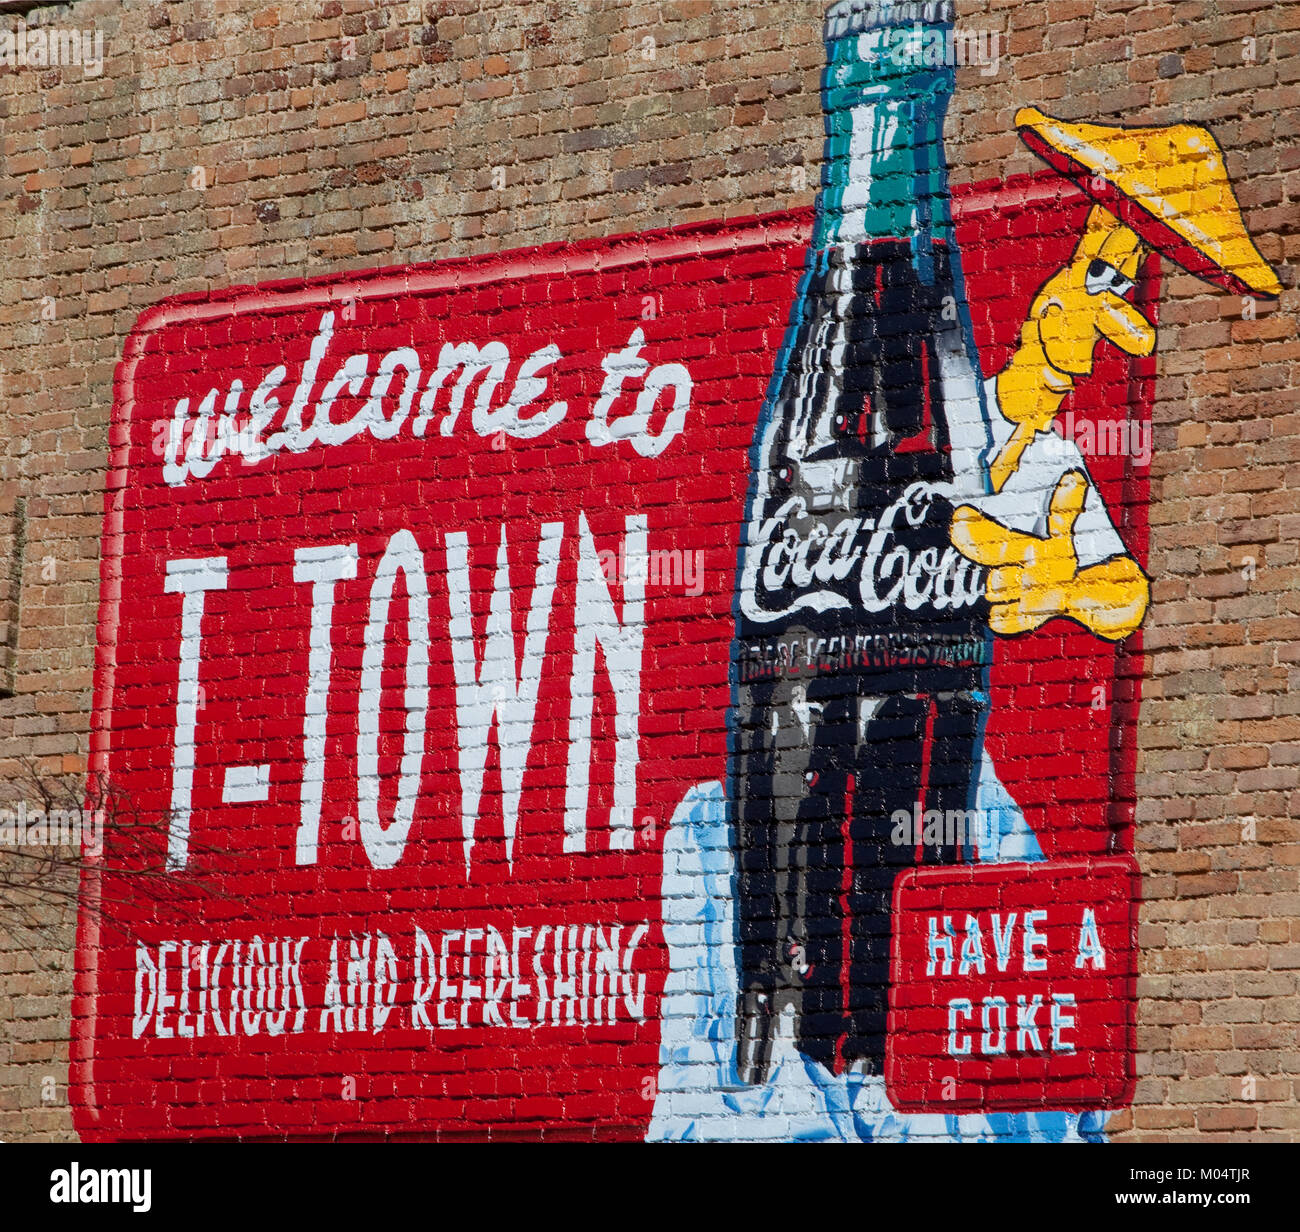 Tuscaloosa, Alabama is also known as T-Town - Stock Image